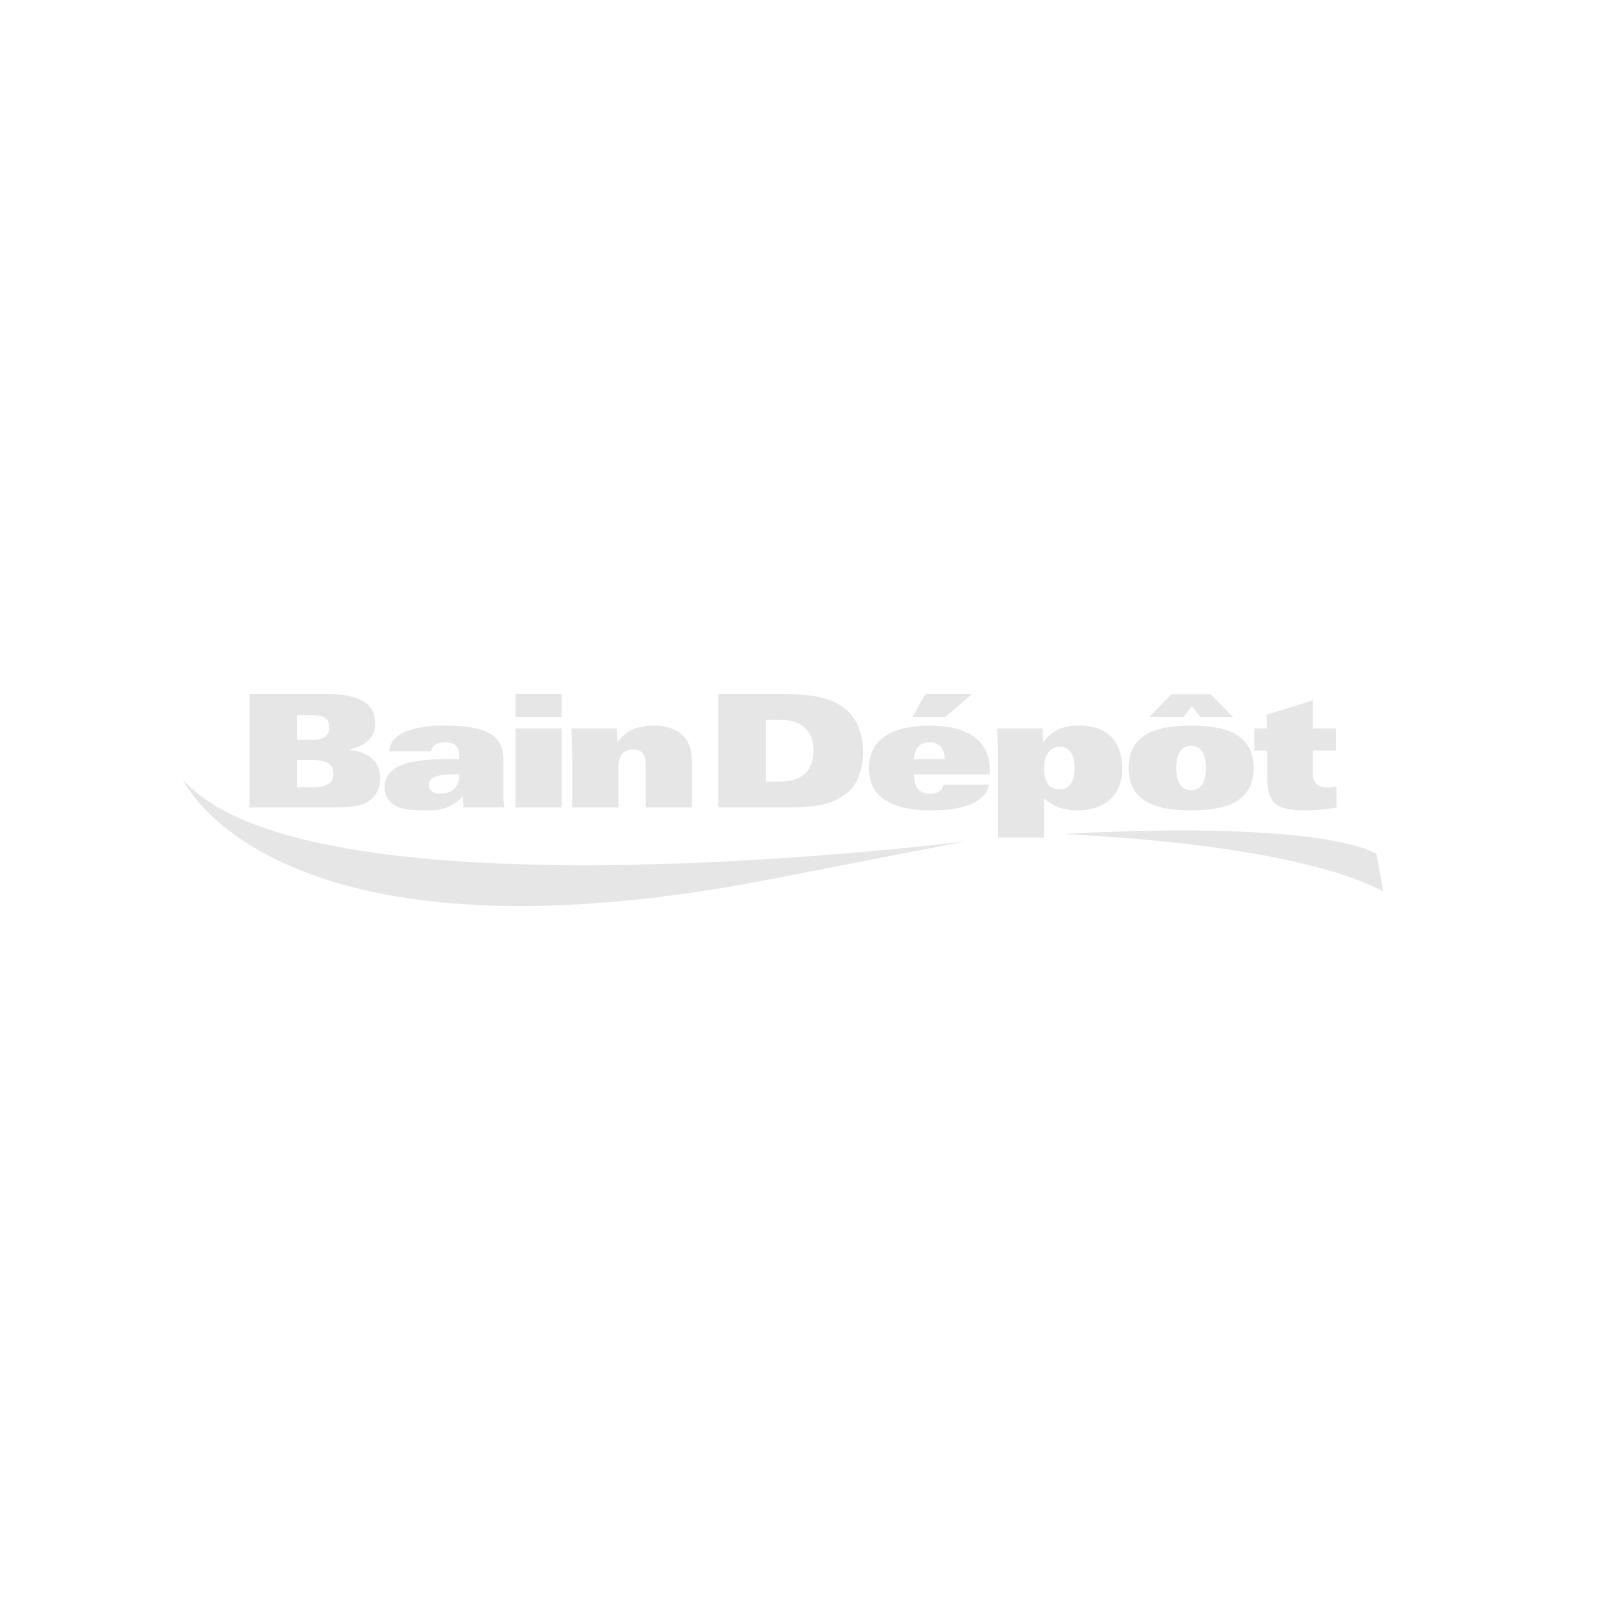 DUO LEX one-piece toilet and IllumiBowl toilet light